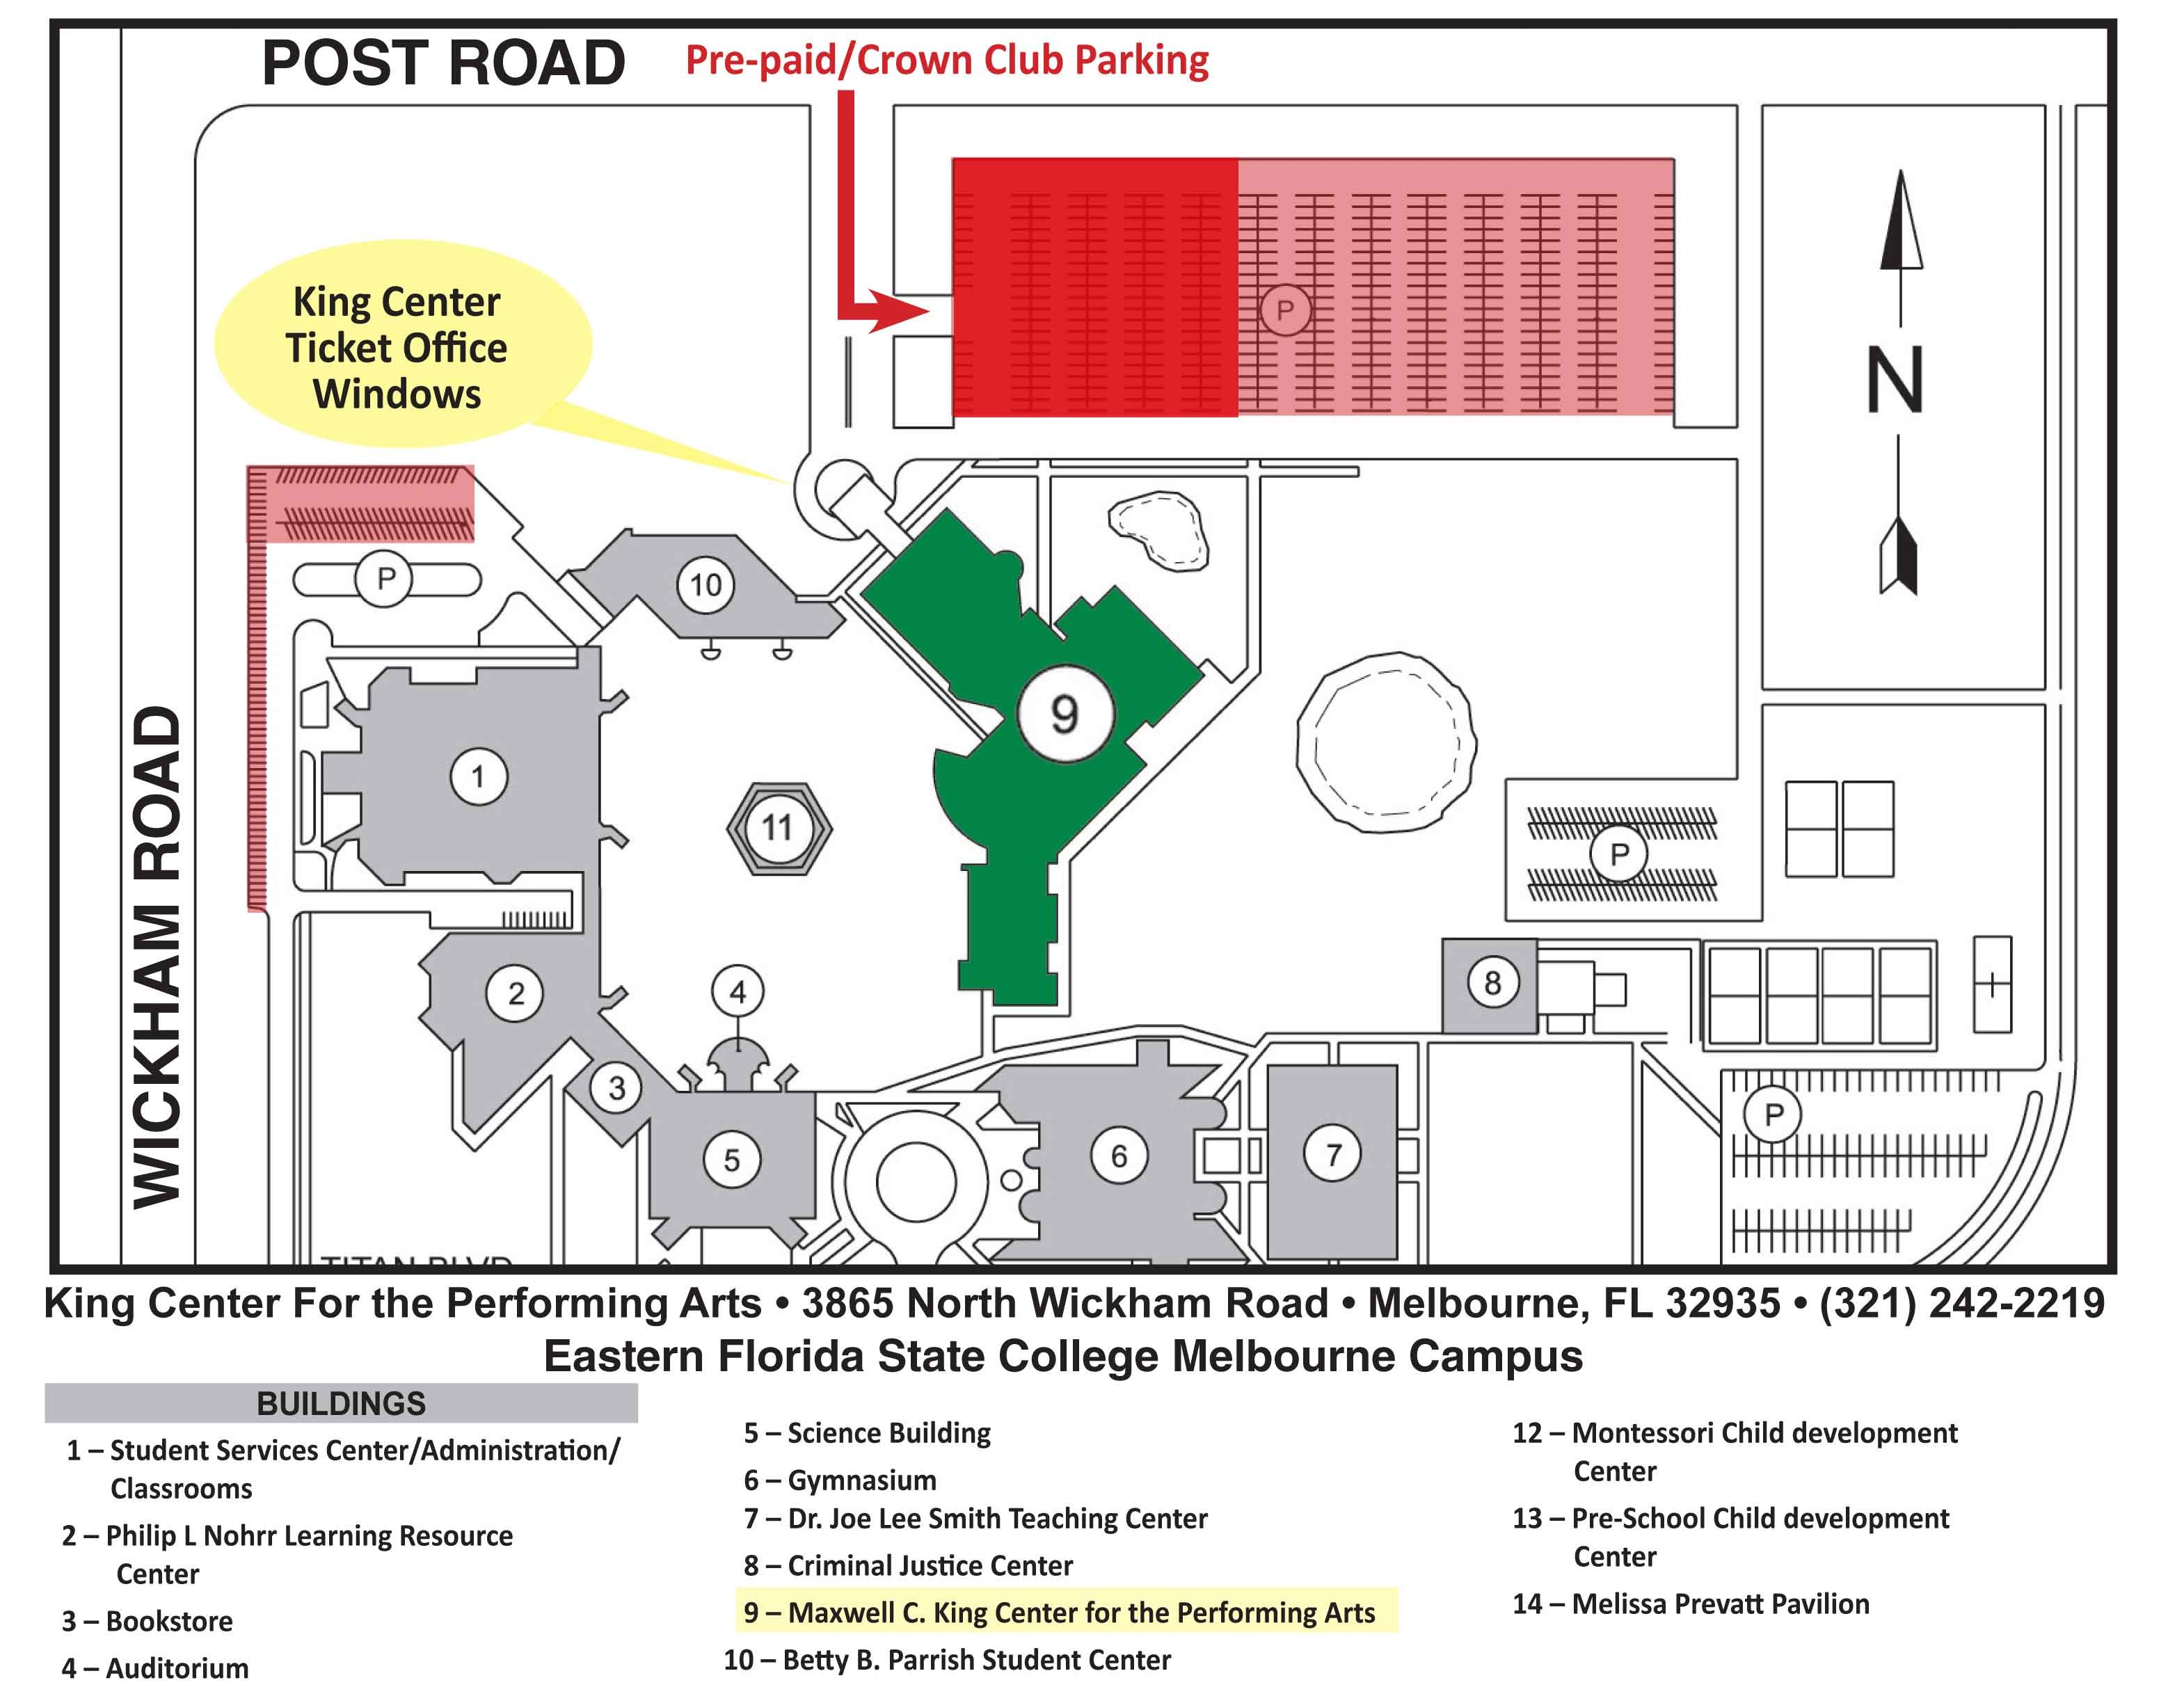 directions parking maxwell c king center for the performing arts. Black Bedroom Furniture Sets. Home Design Ideas